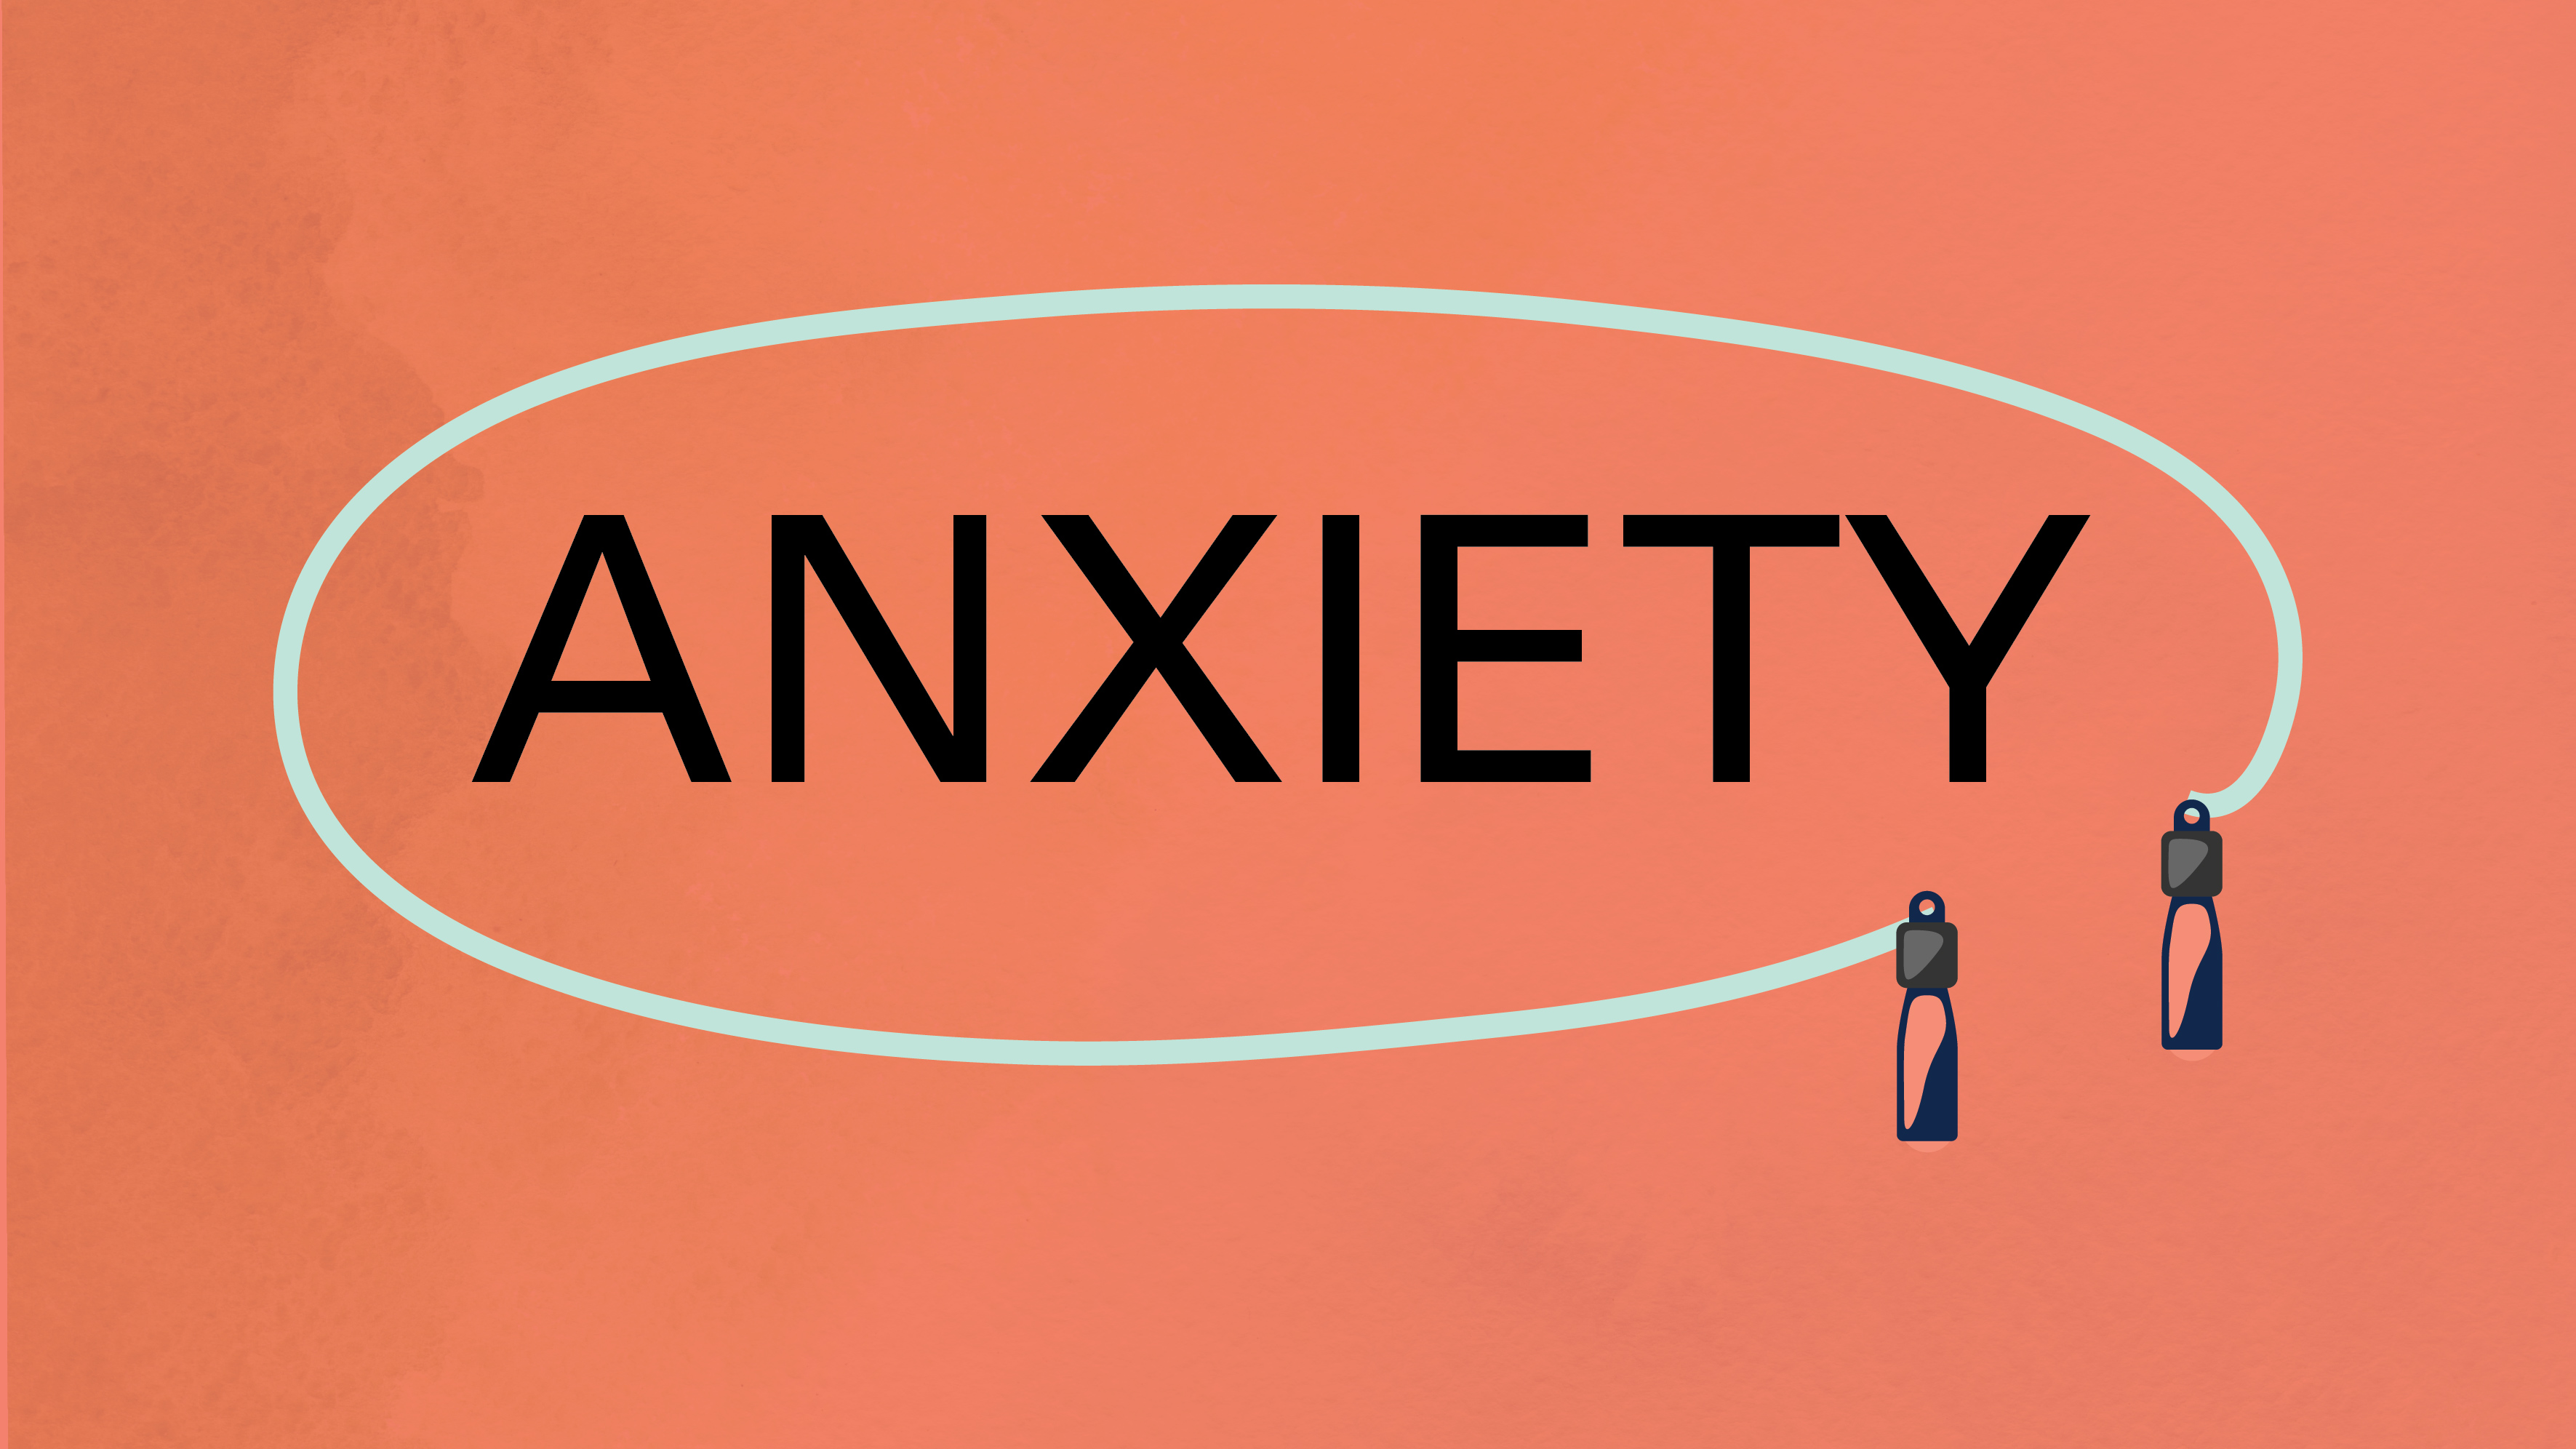 Anxiety exercises